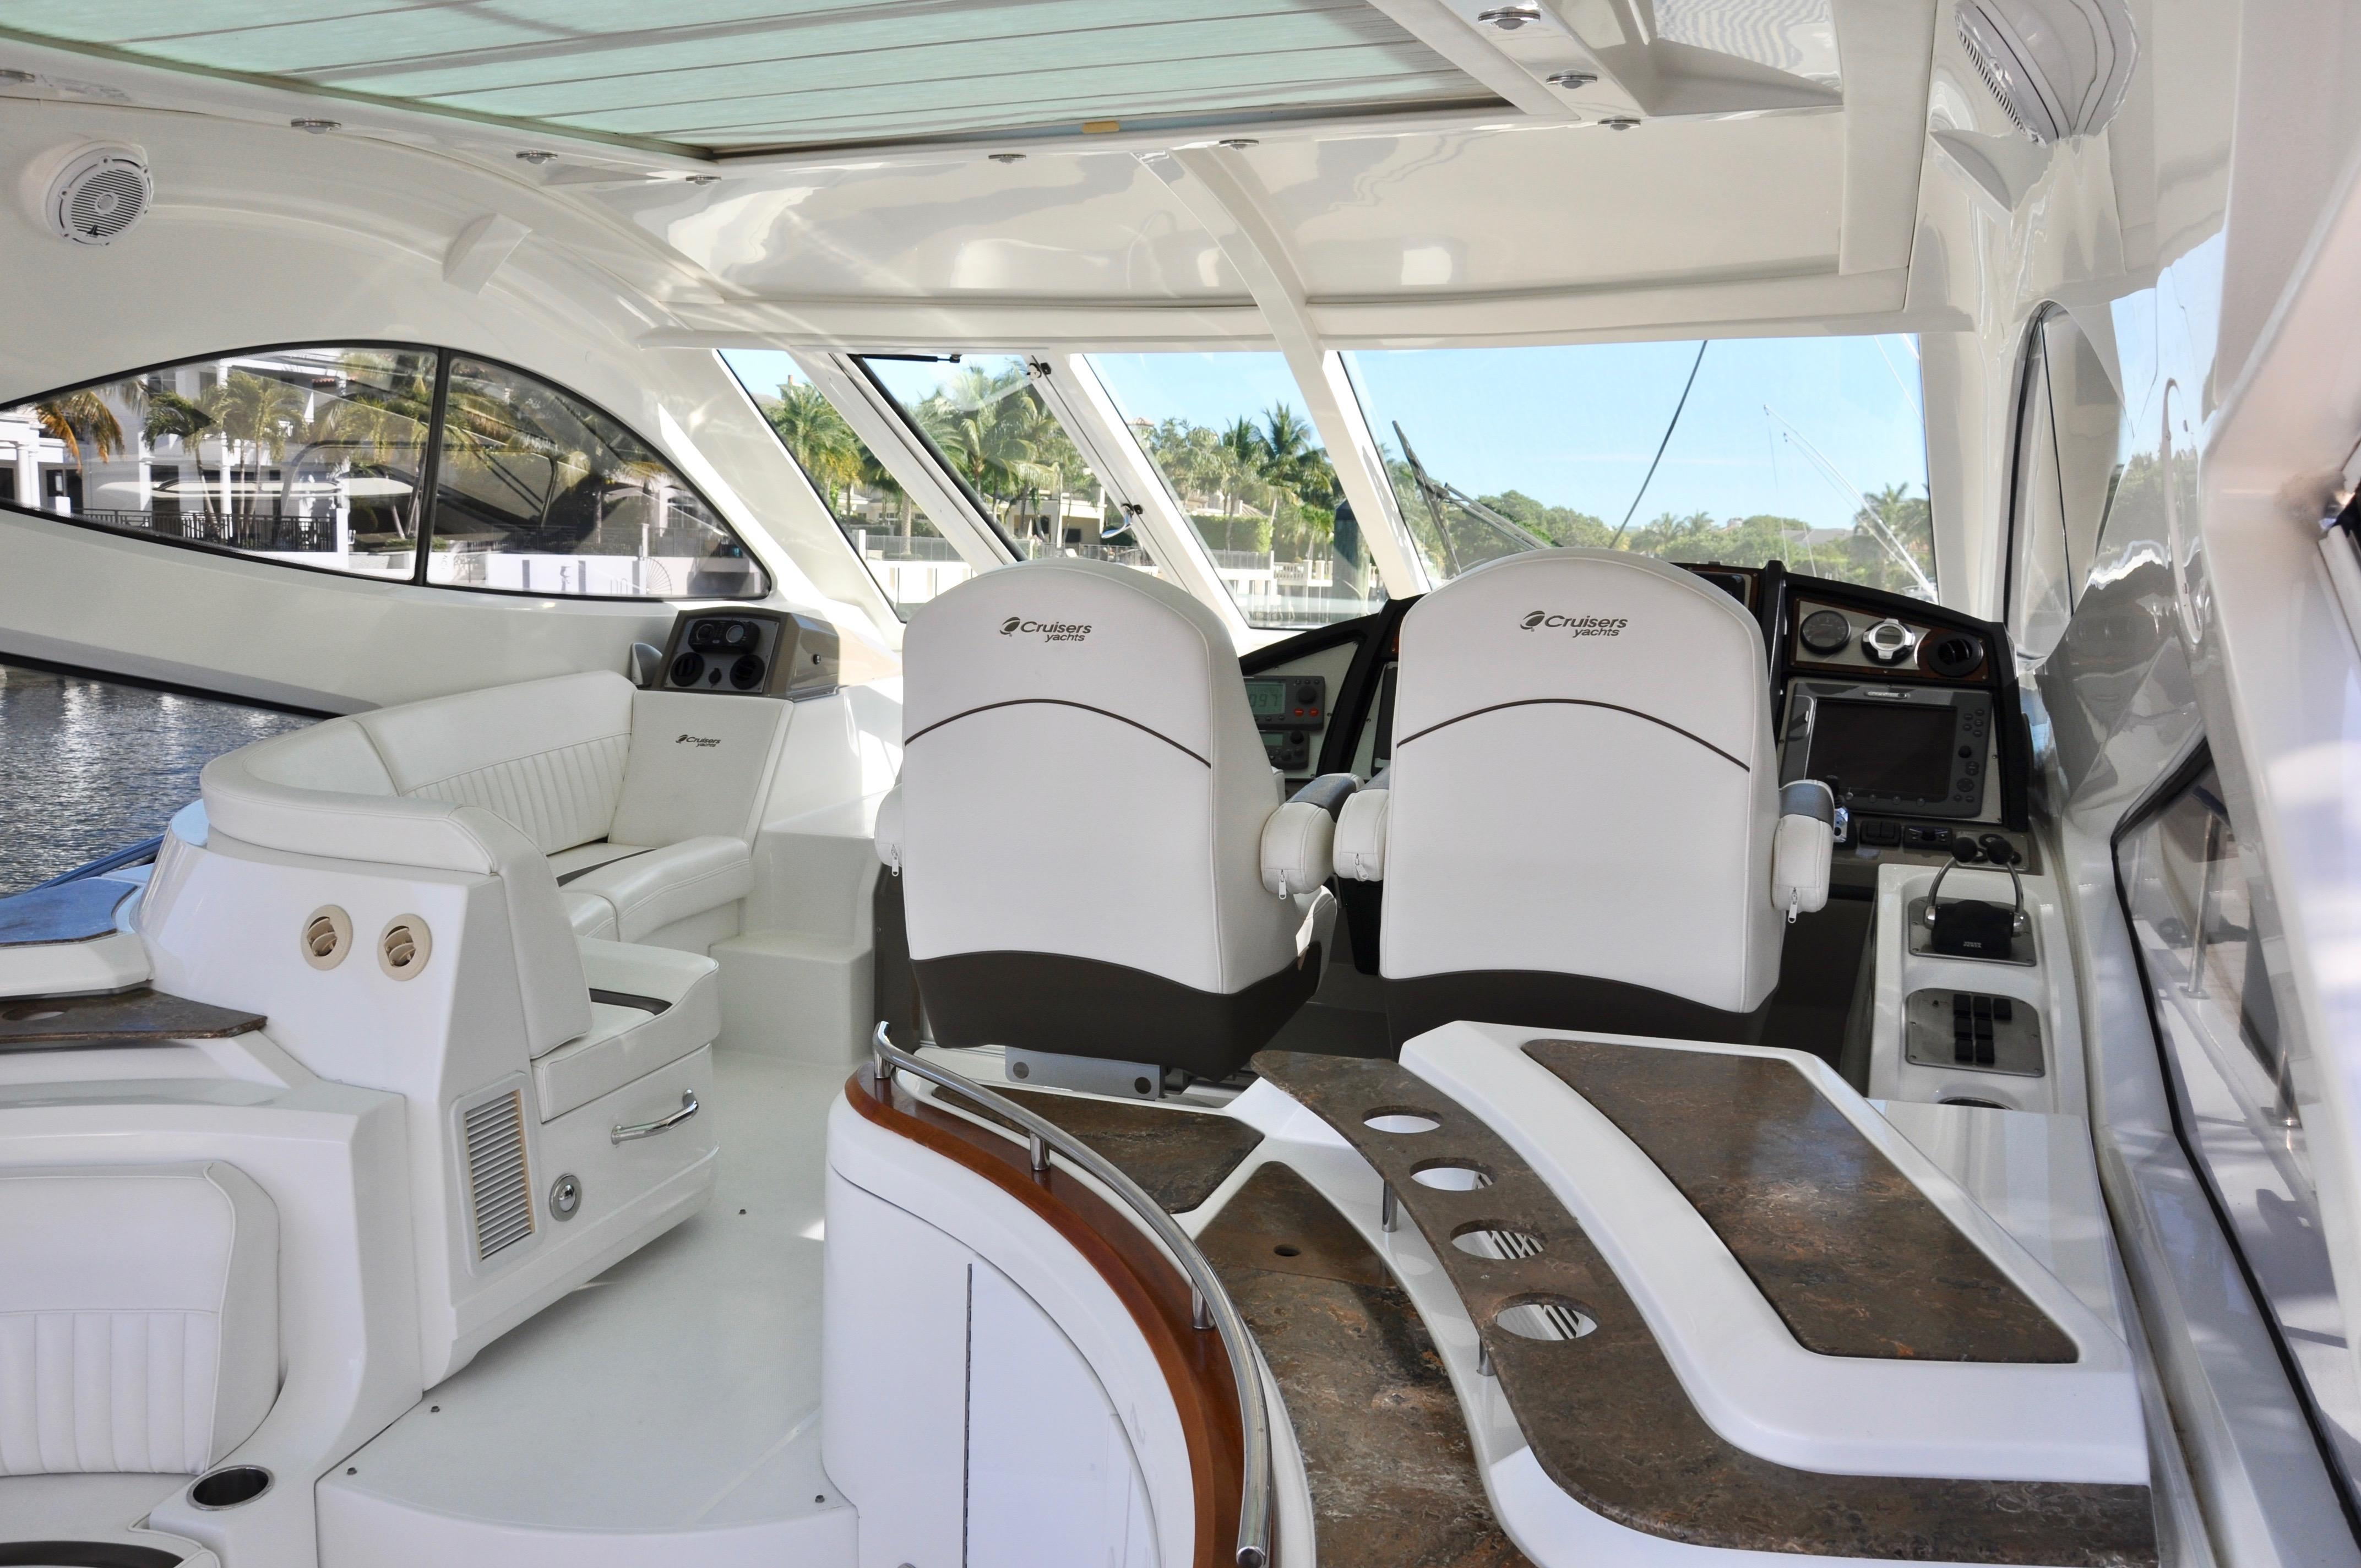 52 Cruisers Yachts 2009 Satisfaction Boca Raton Florida Sold On Wiring Diagram Upper Cockpit Level